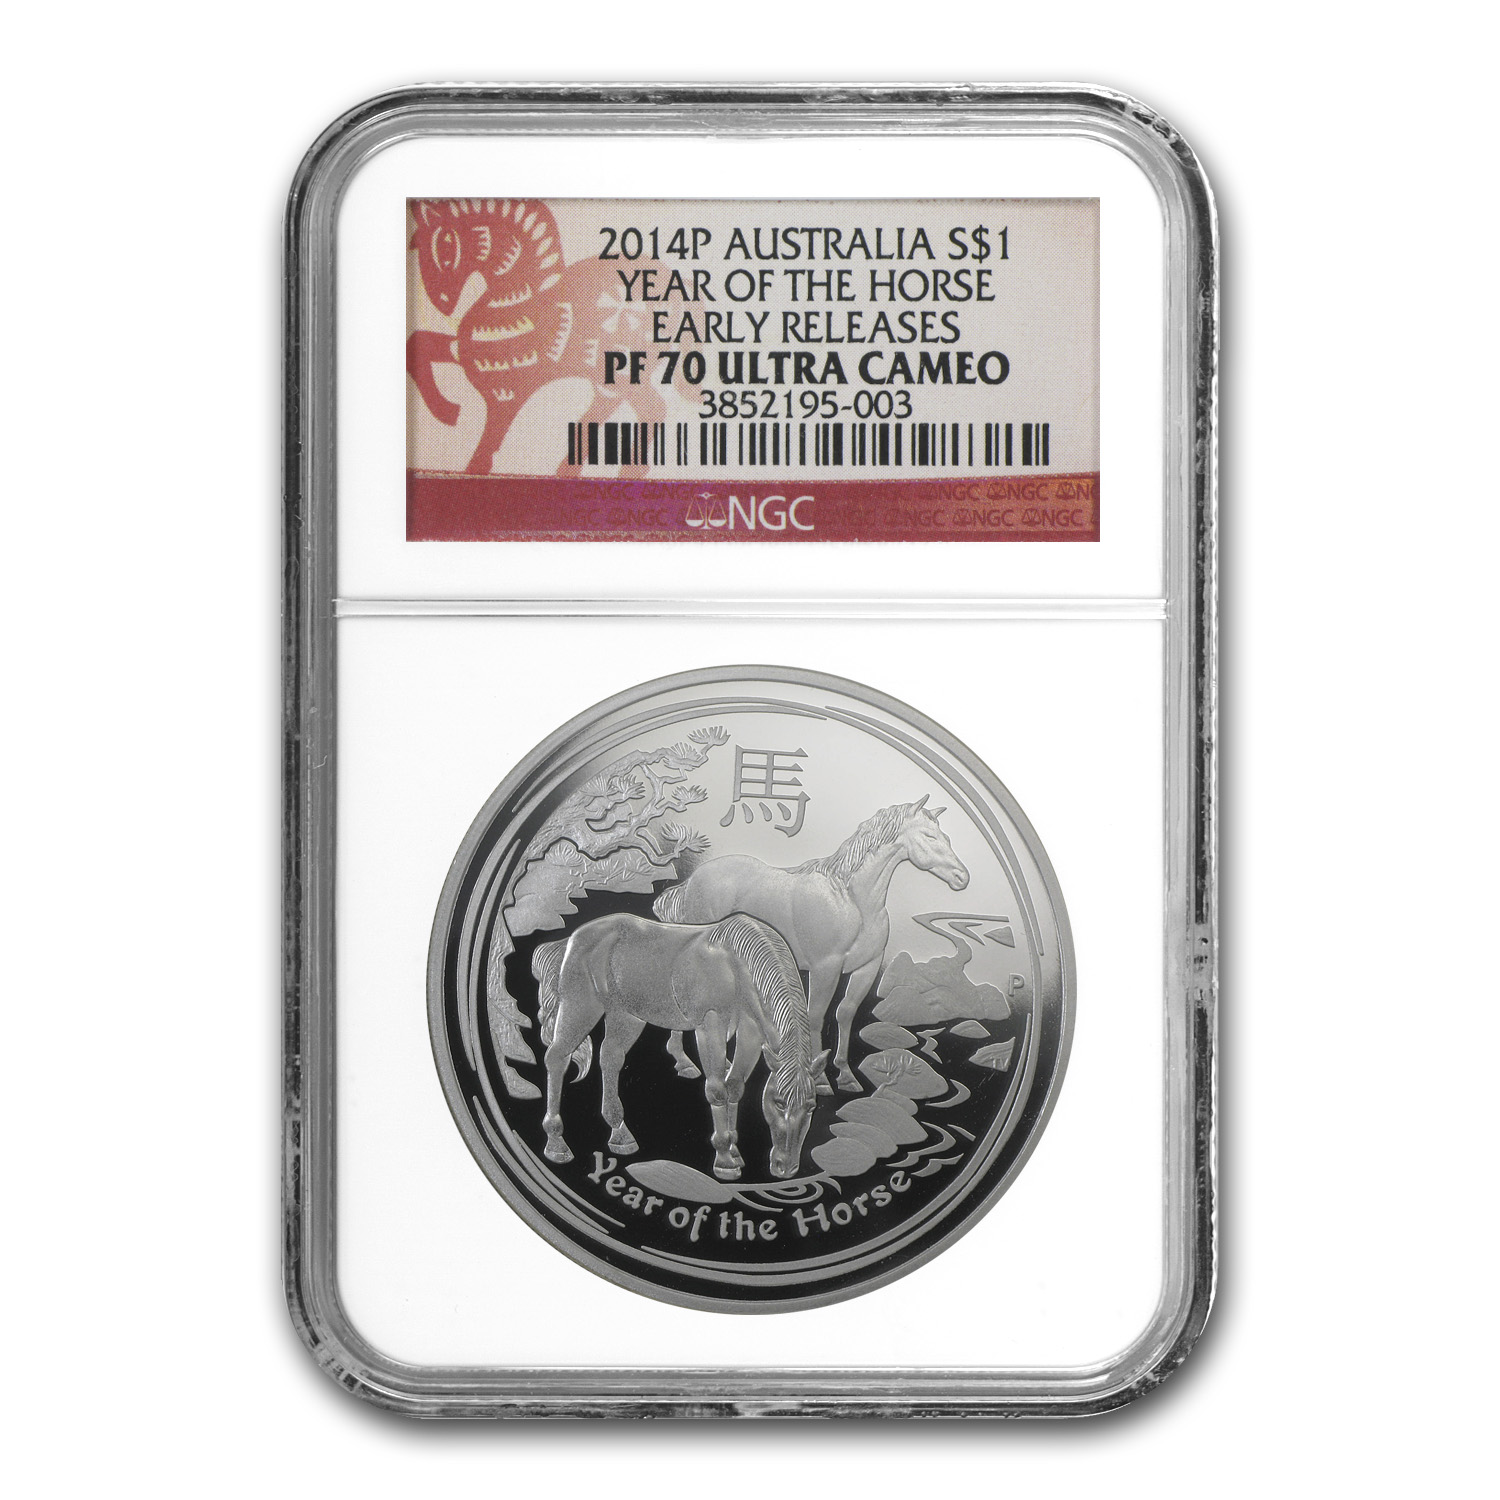 2014 1 oz Silver Australian Year of the Horse PF-70 NGC